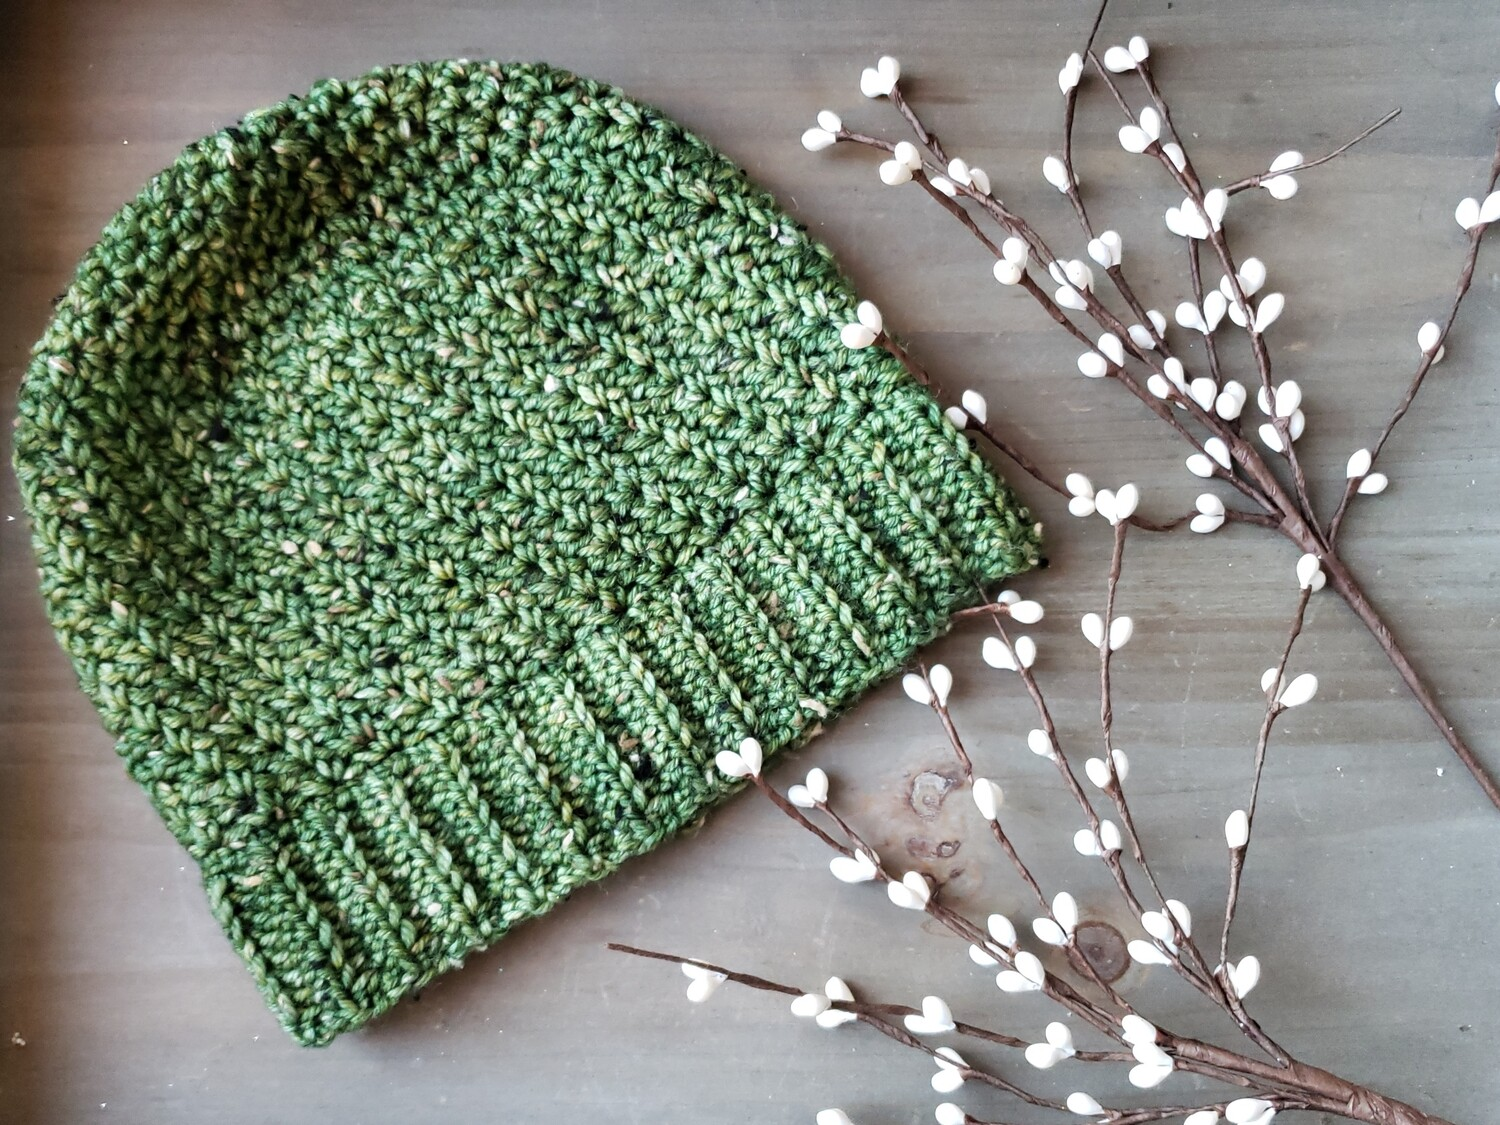 Willow Crochet Kit